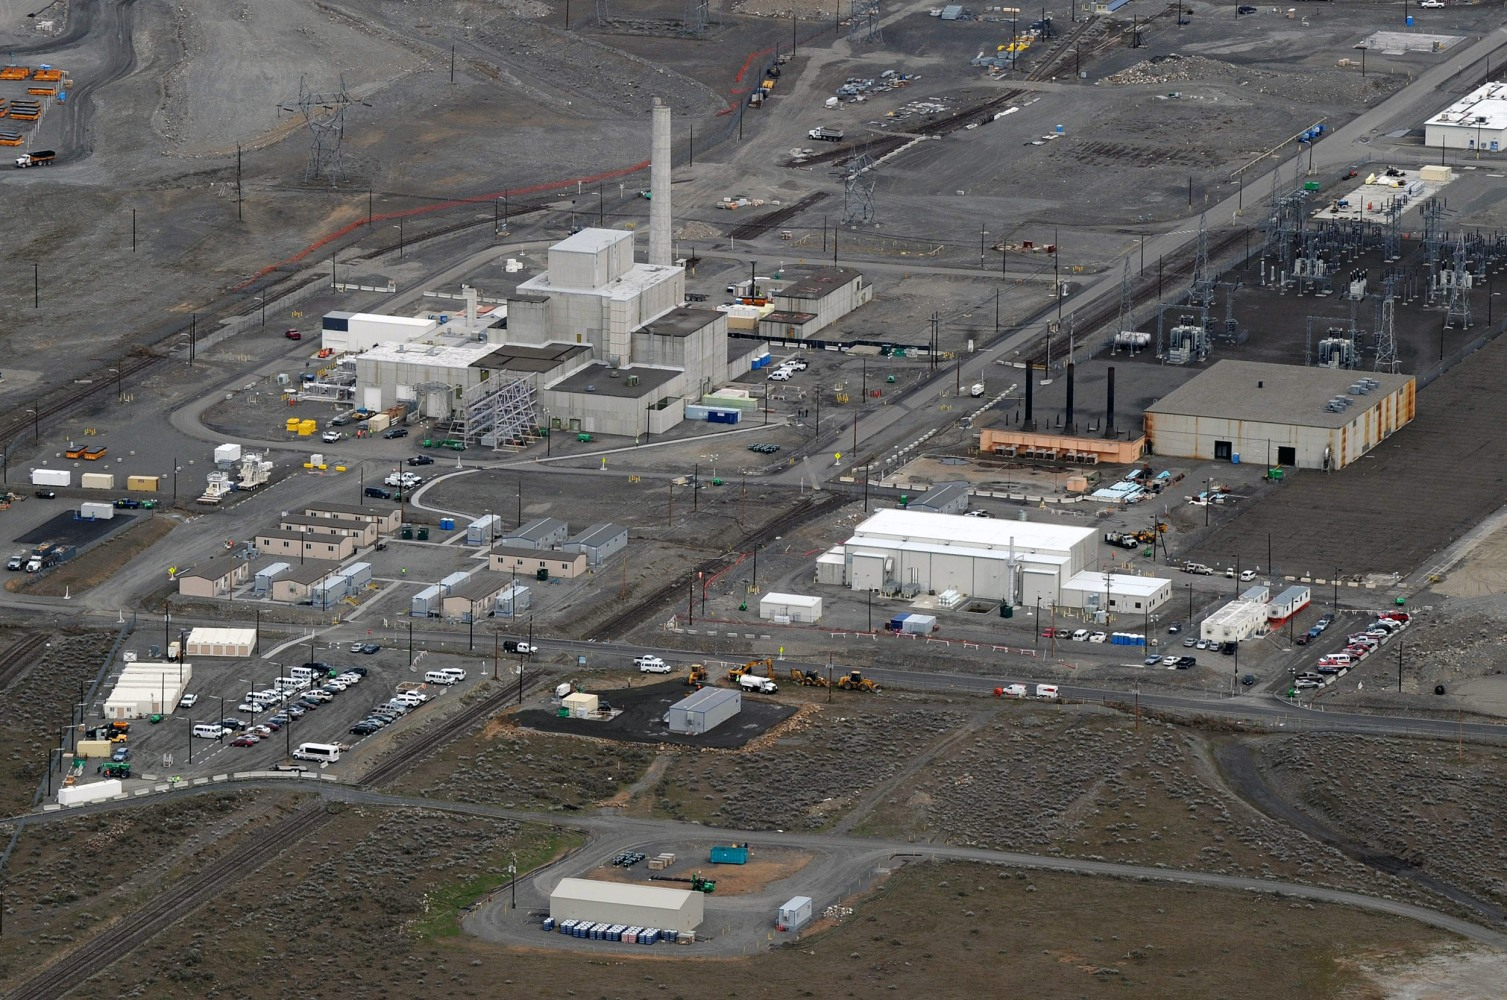 Hanford Tunnel Collapse at Nuclear Site Triggers Emergency Alert